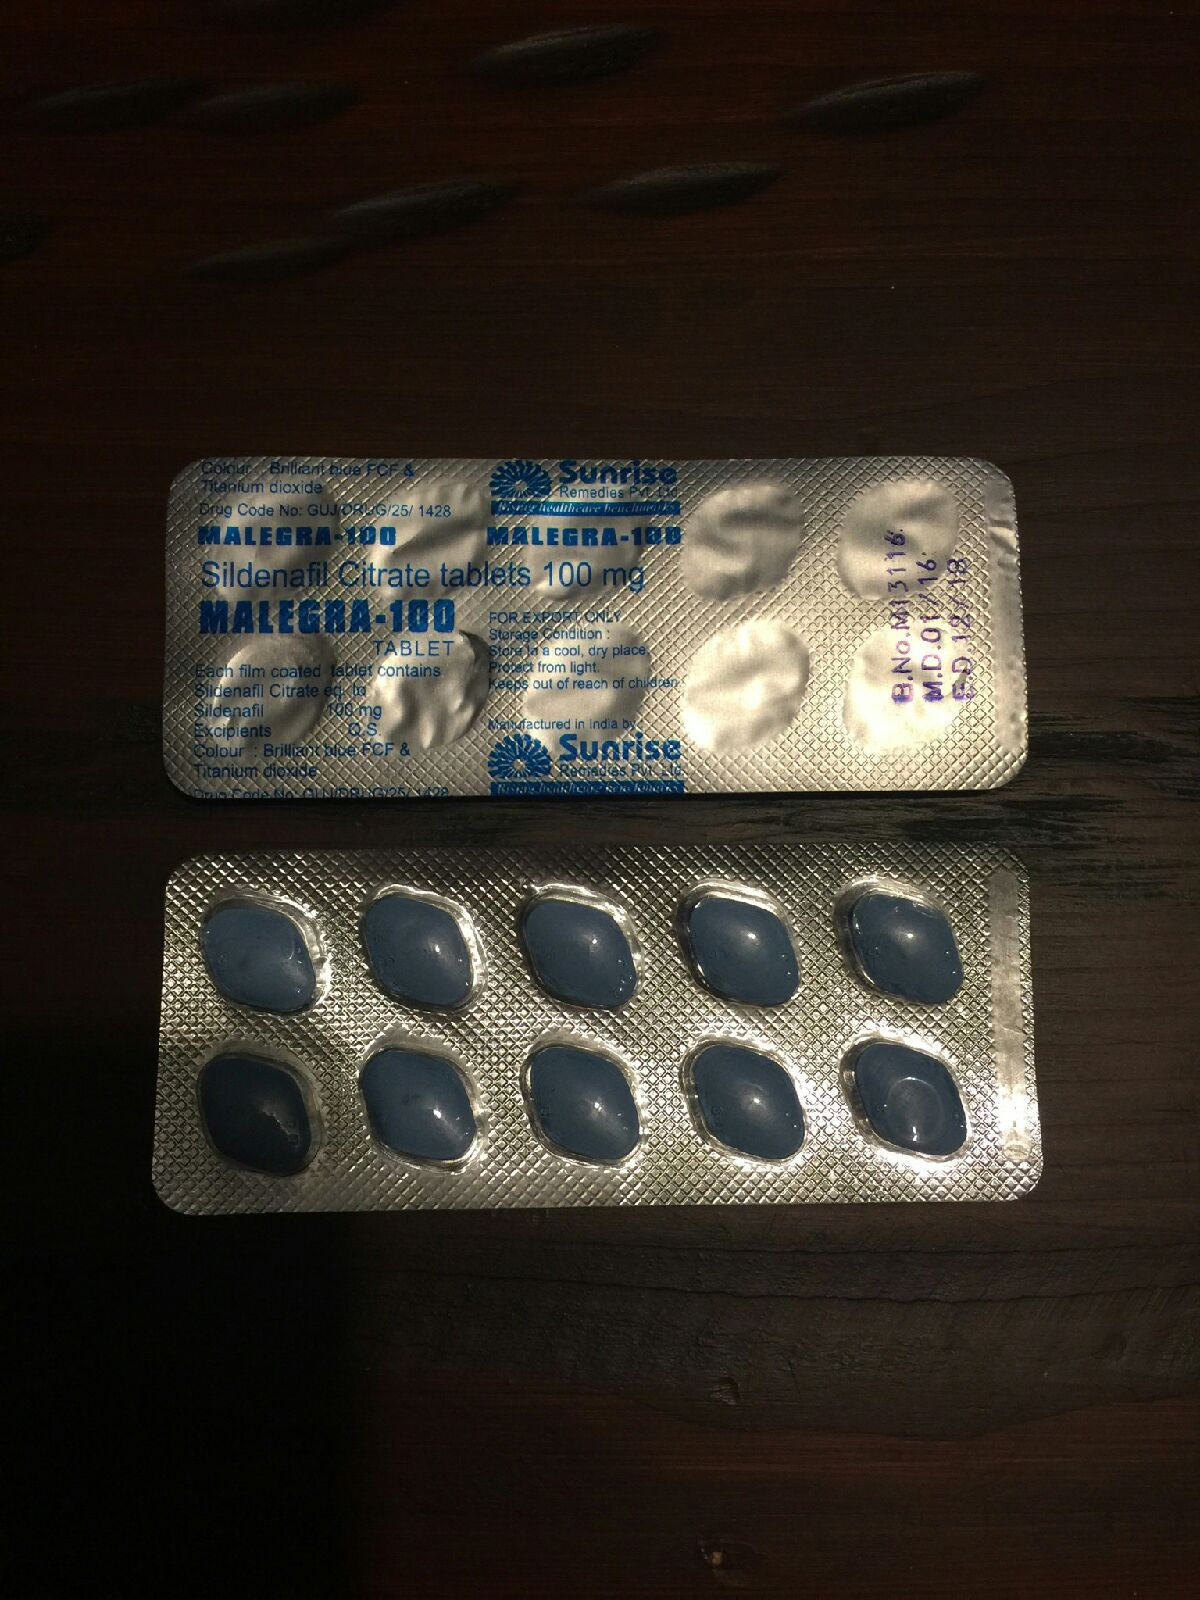 Purchasing zithromax with next day delivery